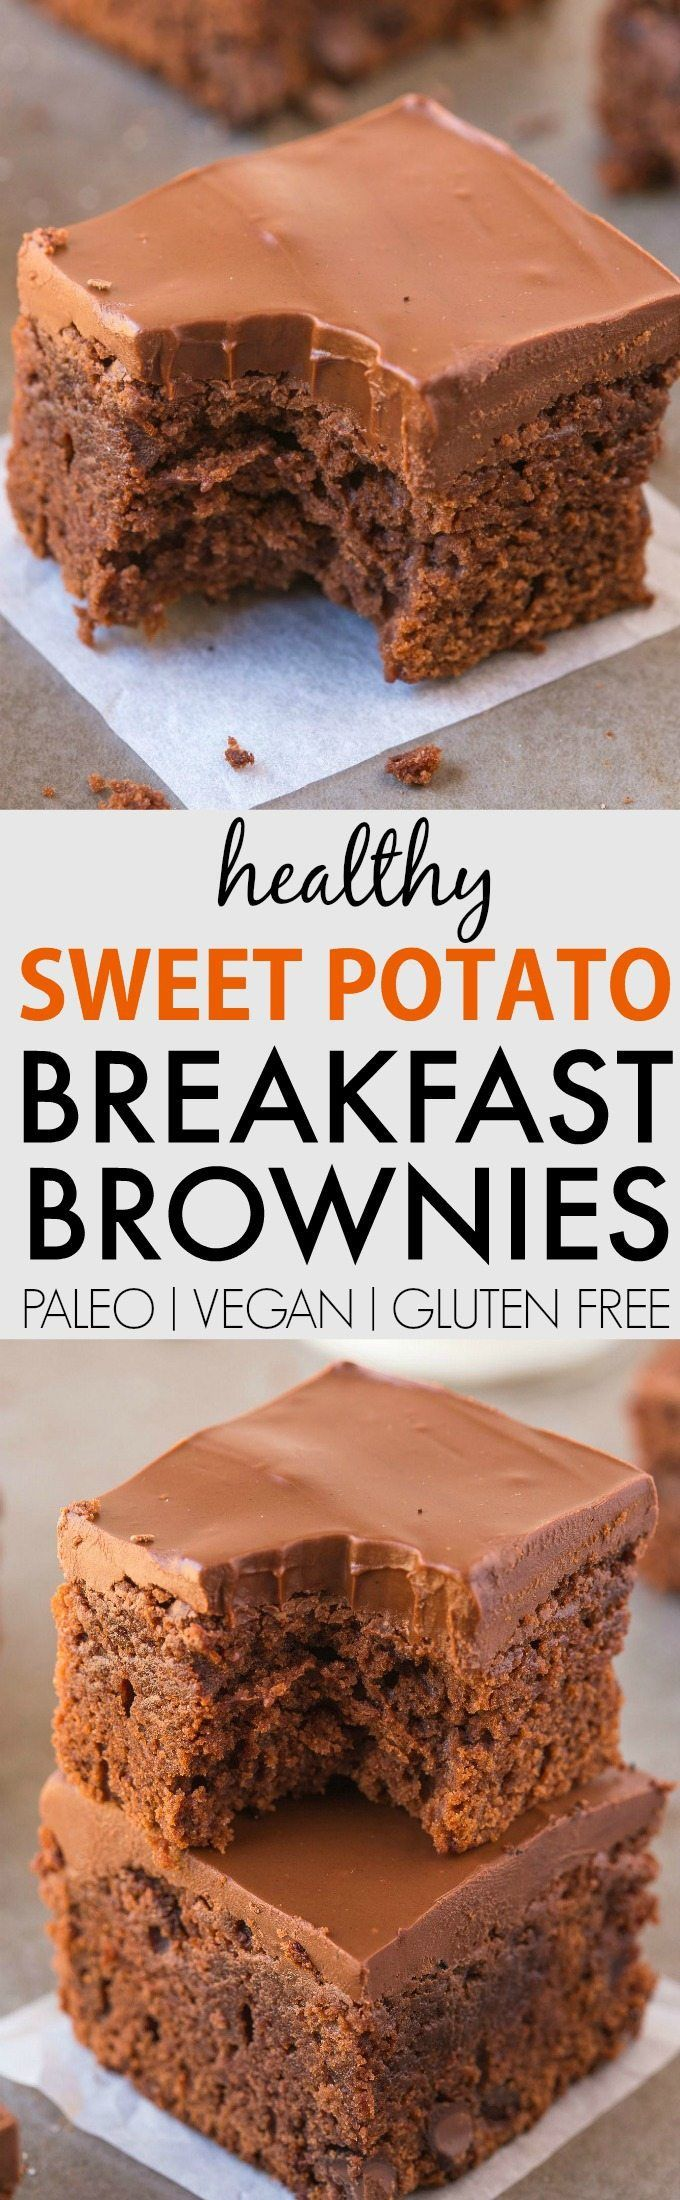 Healthy 5 Ingredient Sweet Potato BREAKFAST Brownies (V, GF, P)- SUPER fudgy, hearty and LOADED with chocolate goodness, its the filling and satisfying guilt-free breakfast, snack or dessert! {vegan, gluten free, paleo recipe}